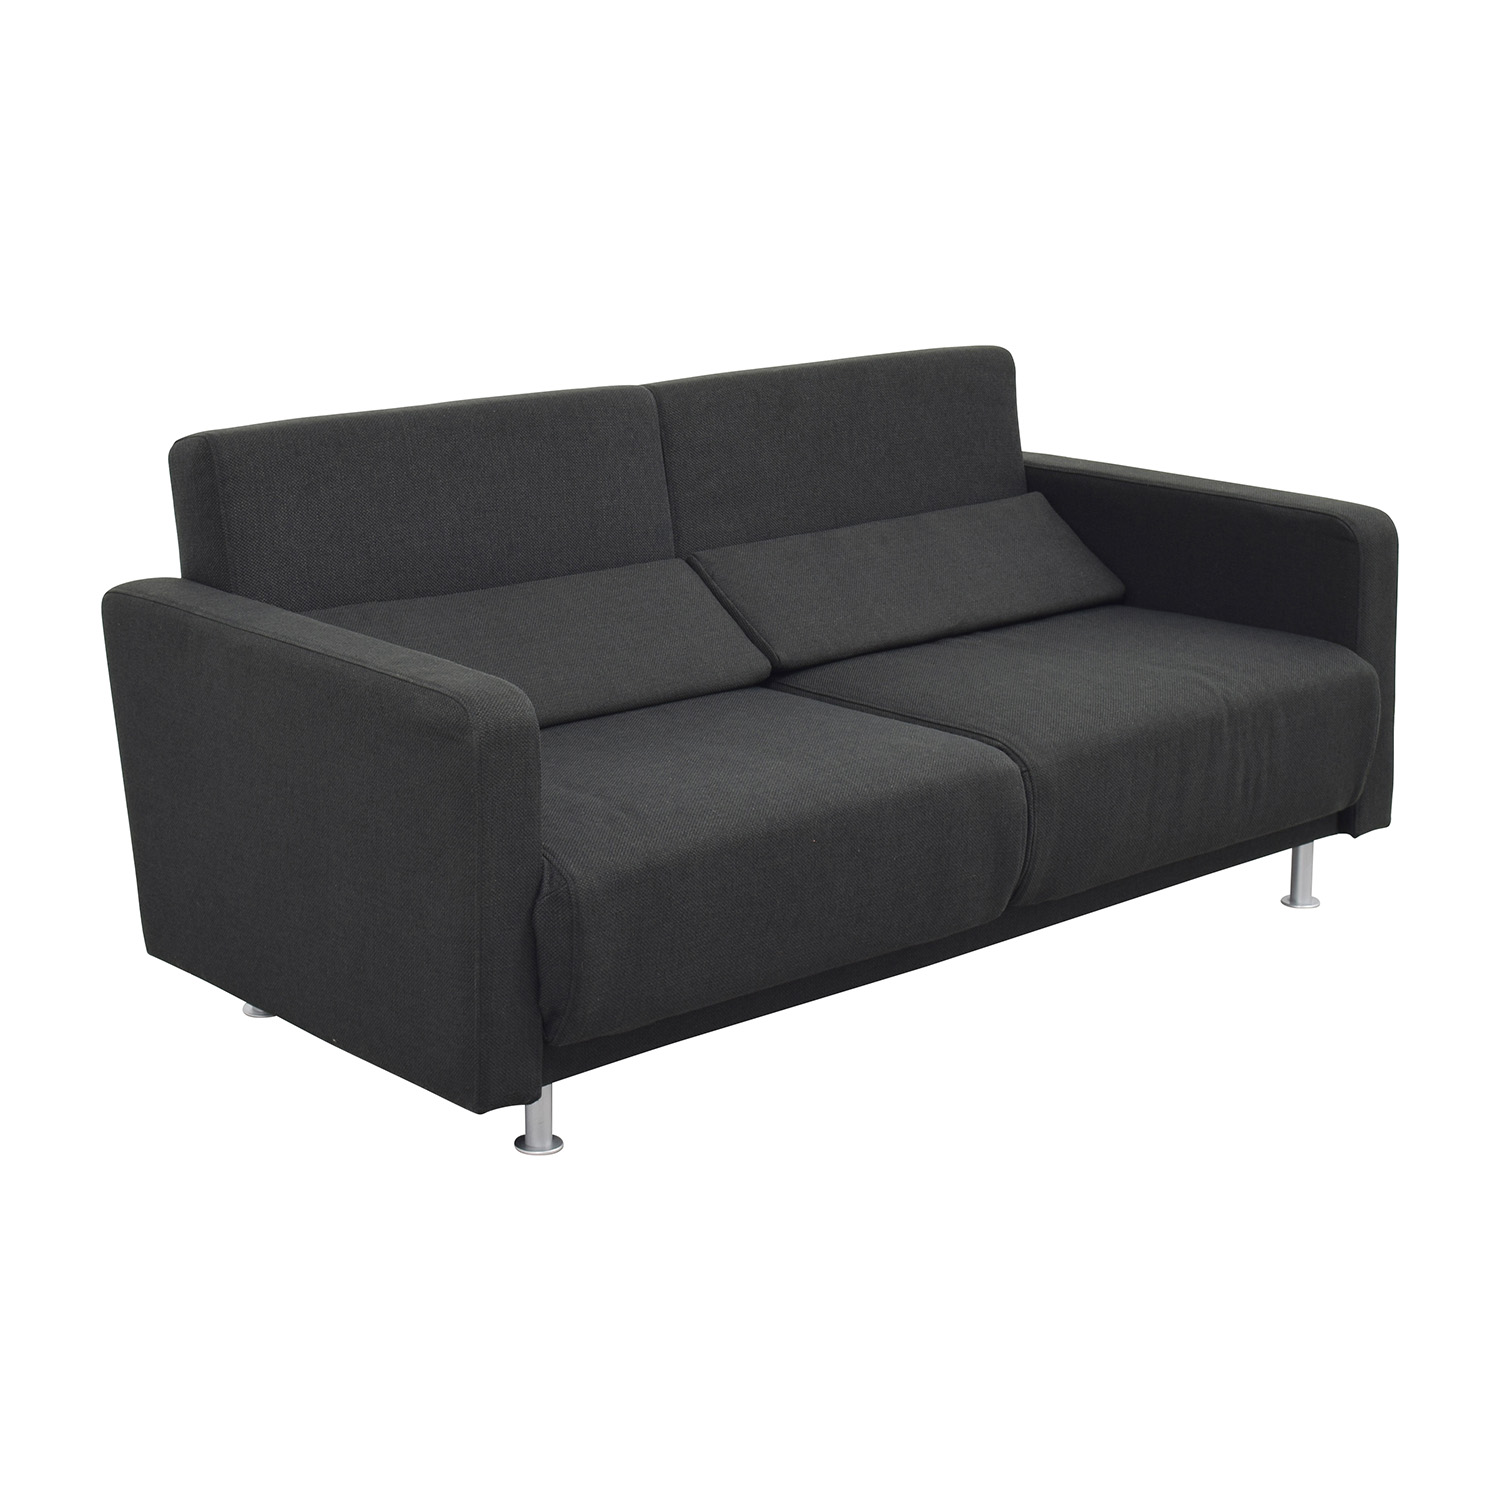 67 off boconcept boconcept melo black sofa bed sofas Boconcept sofa price